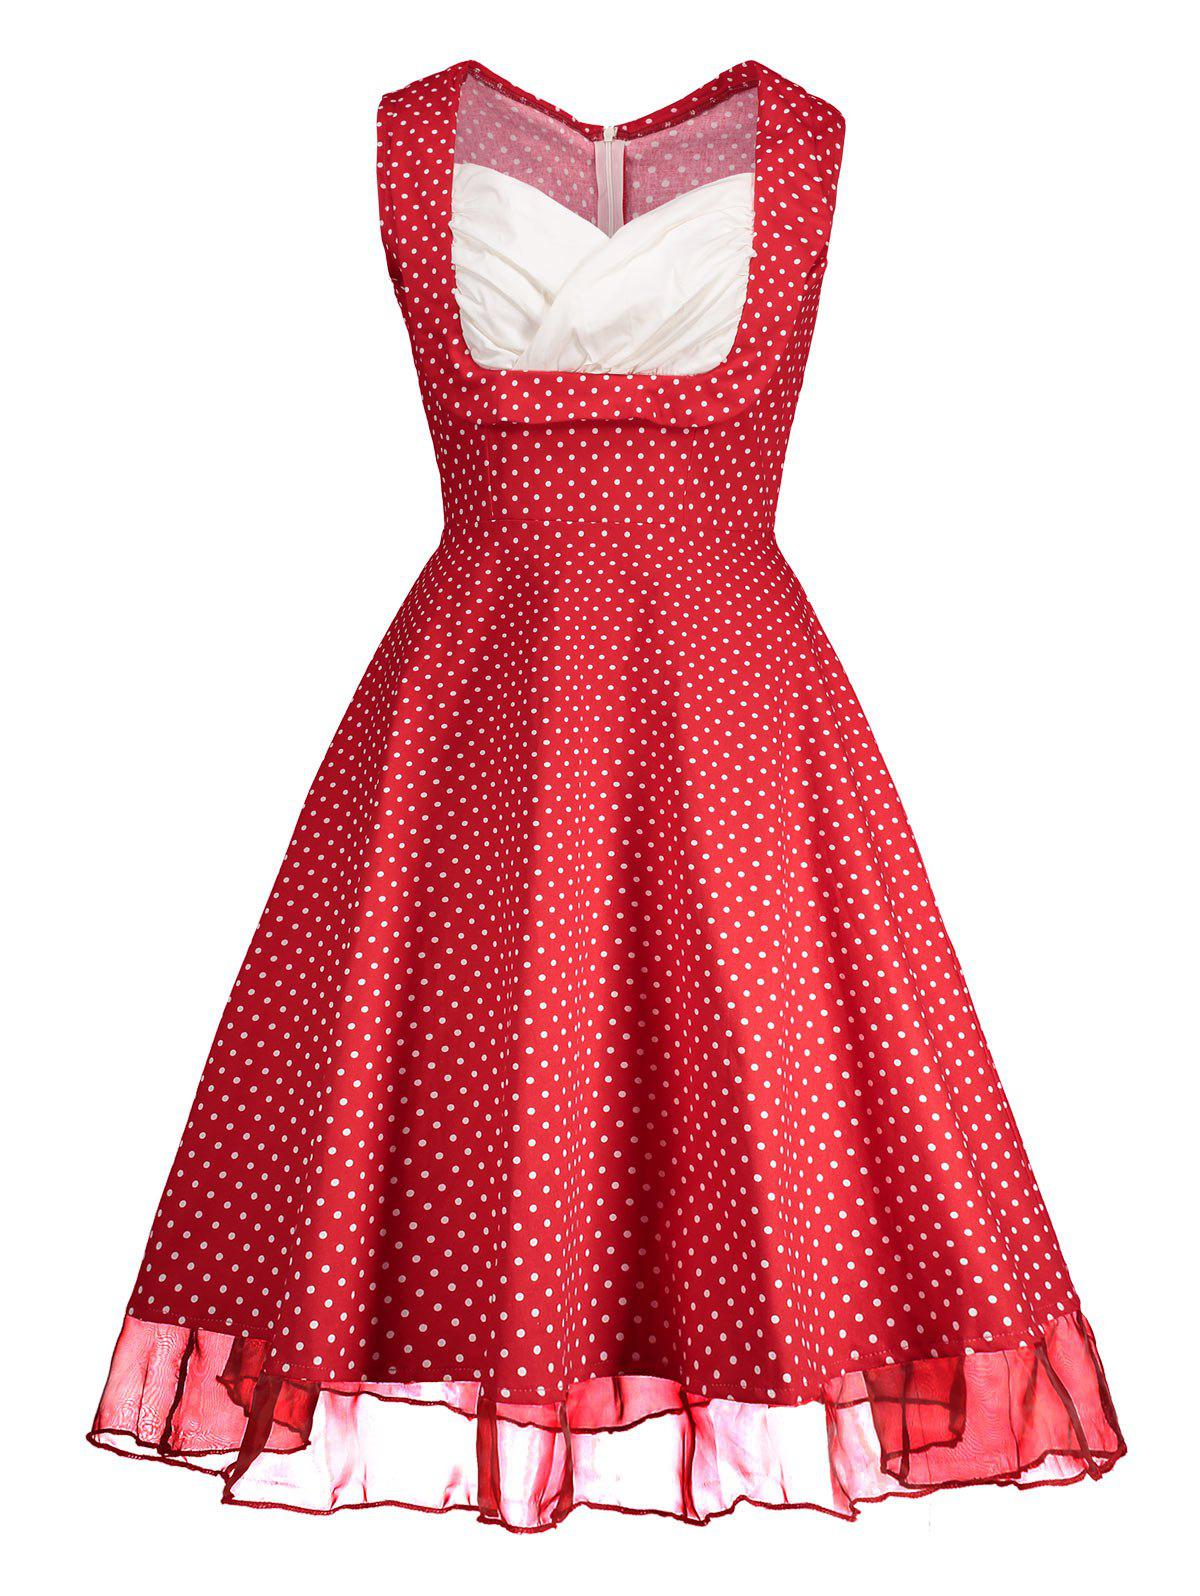 Sweetheart Neckline Polka Dot Pin Up Prom Dress - RED XL